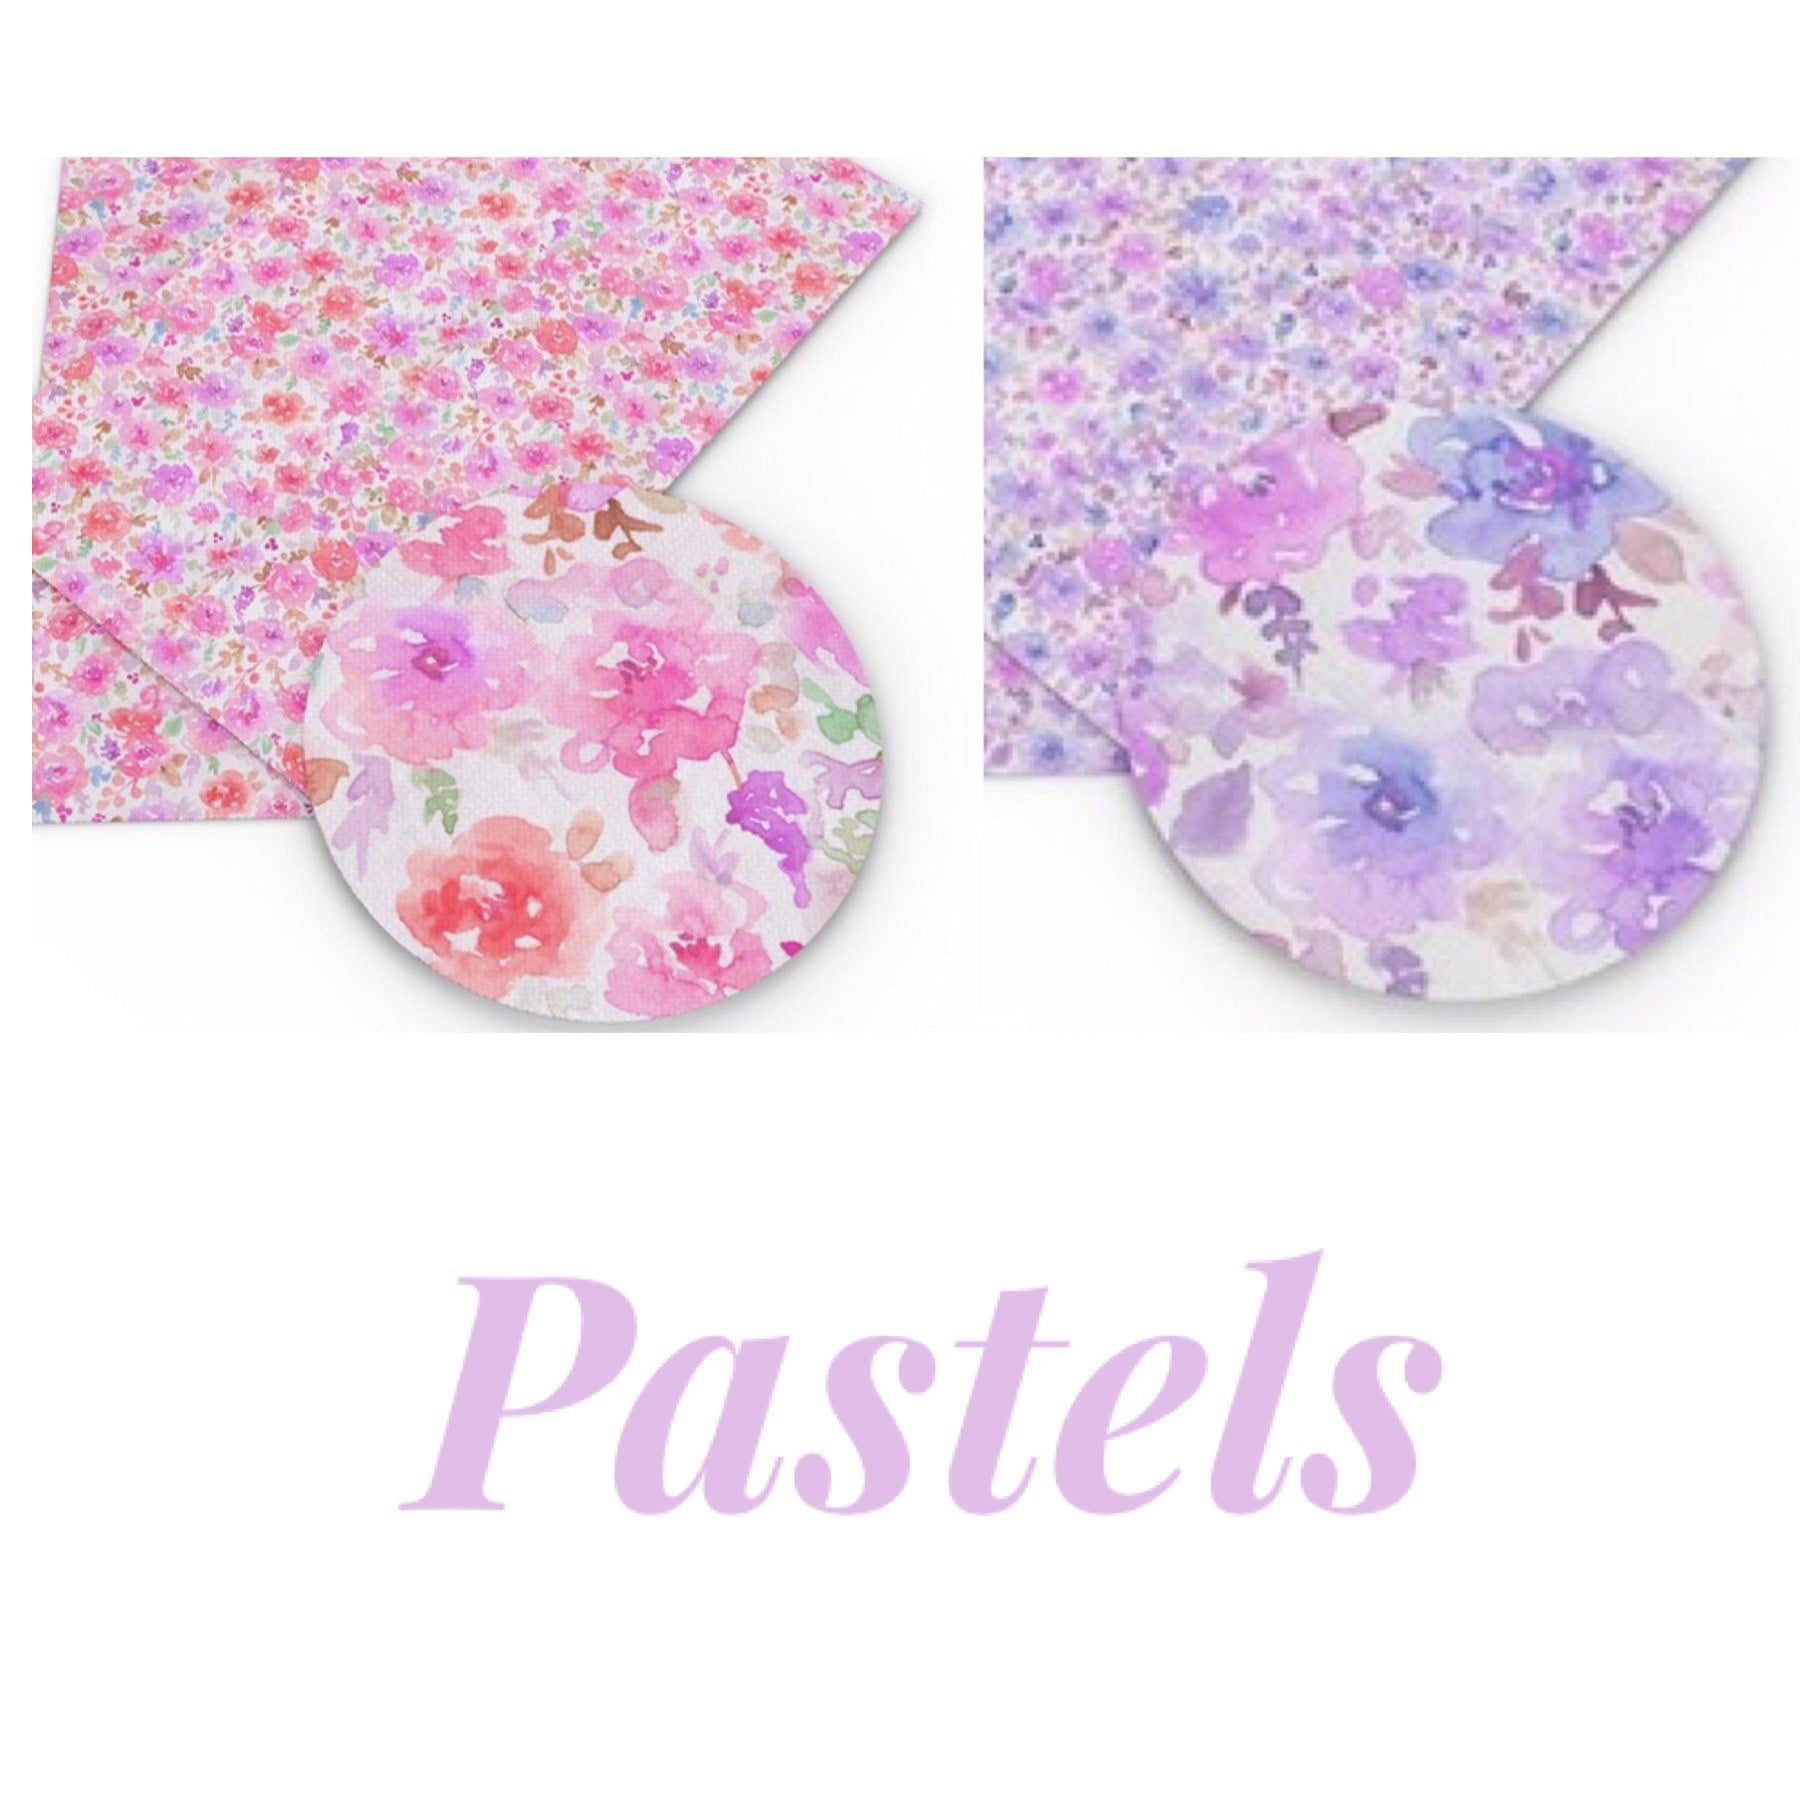 Water colours floral printed leatherette fabric A4